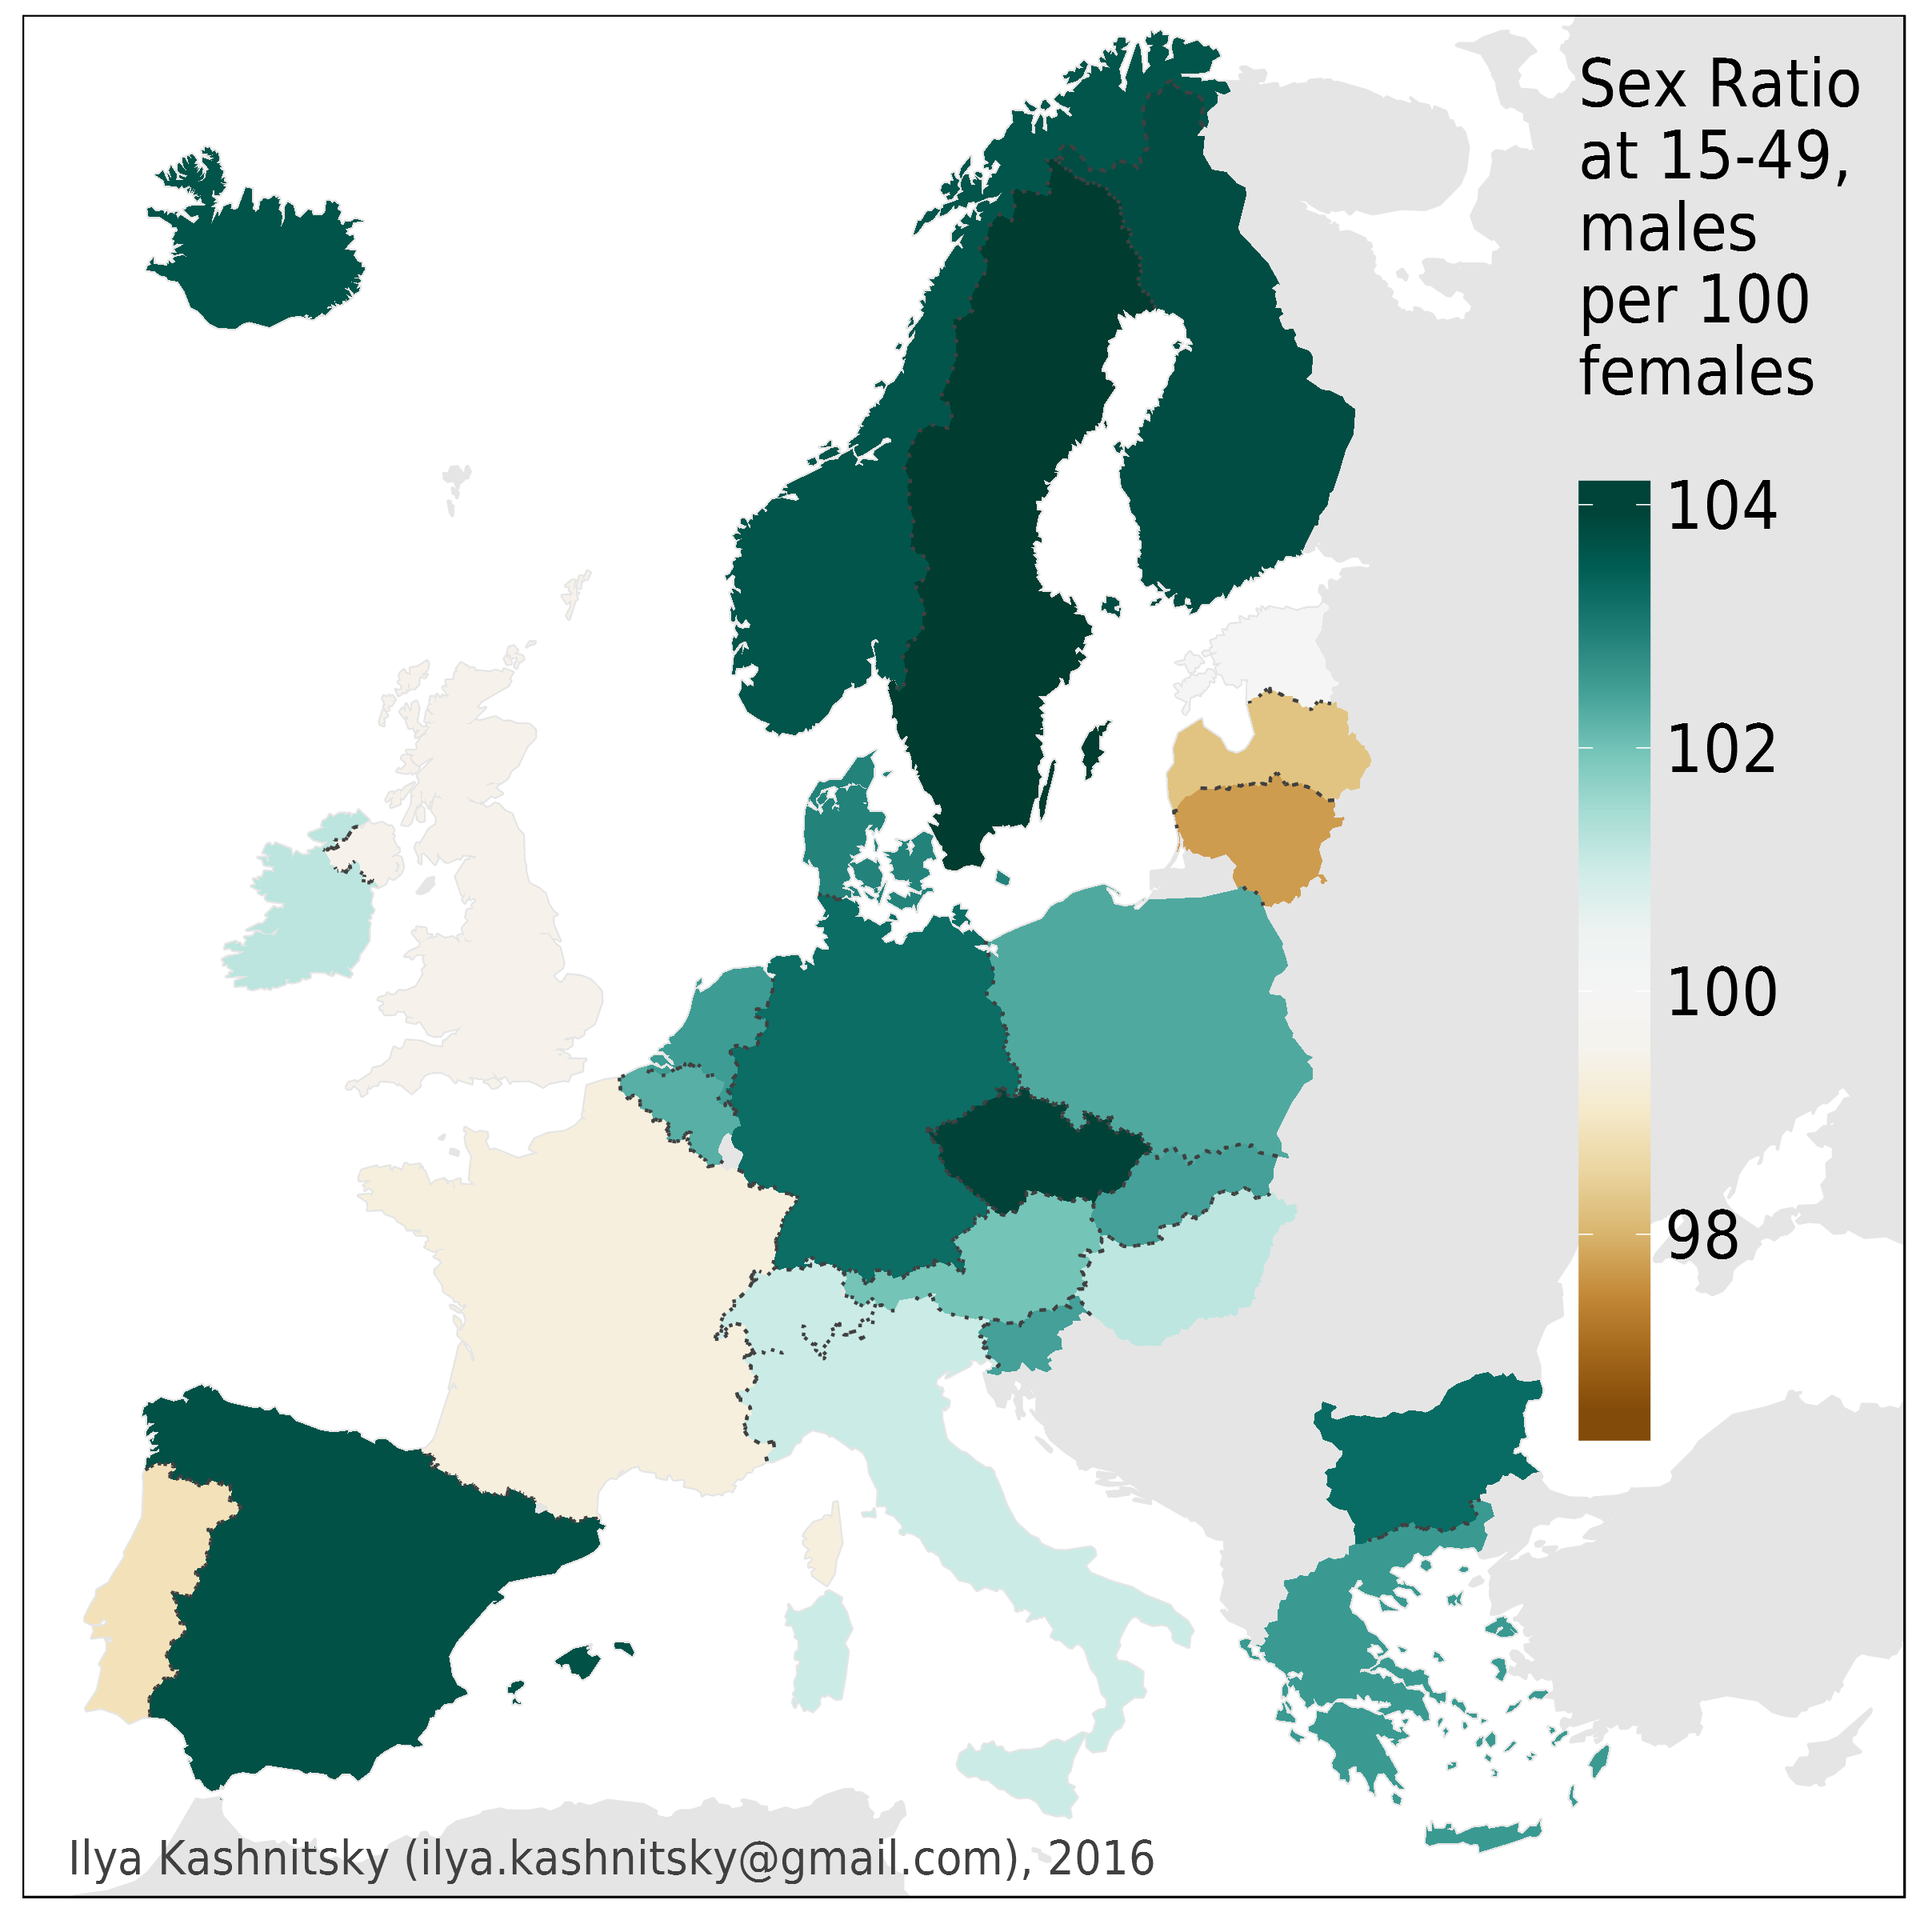 sex ratio pattern in the world Gender inequality and the sex ratio in the ratio is amongst the lowest in the world: unusual sex ratio patterns.